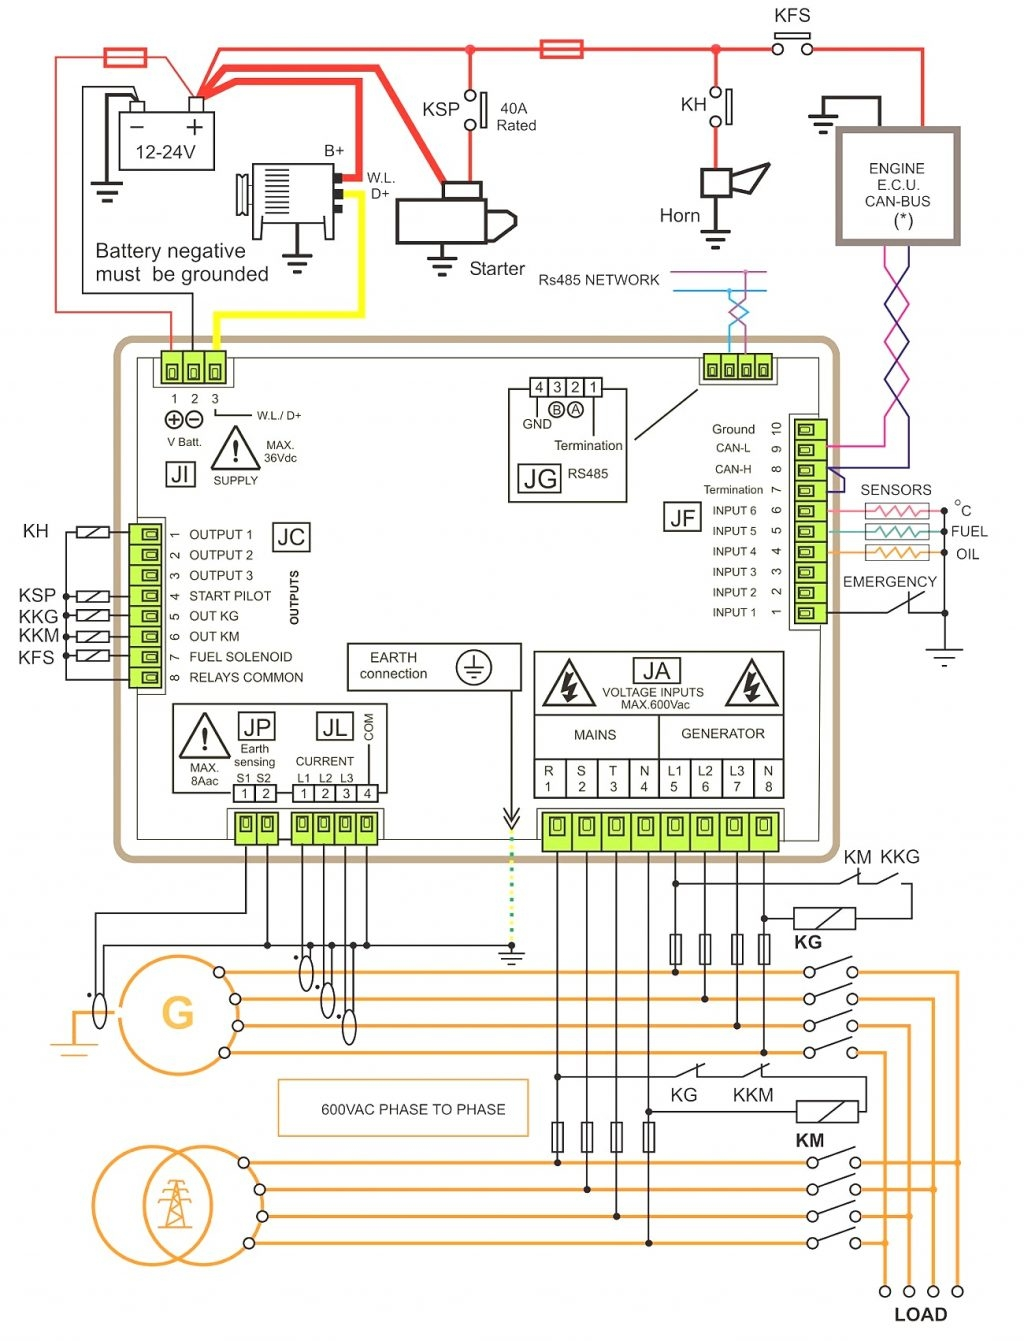 generac smart switch wiring diagram Collection-Generac Smart Switch Wiring Diagram Beautiful Generac Troubleshooting Guide Choice Image Free Troubleshooting 9-d